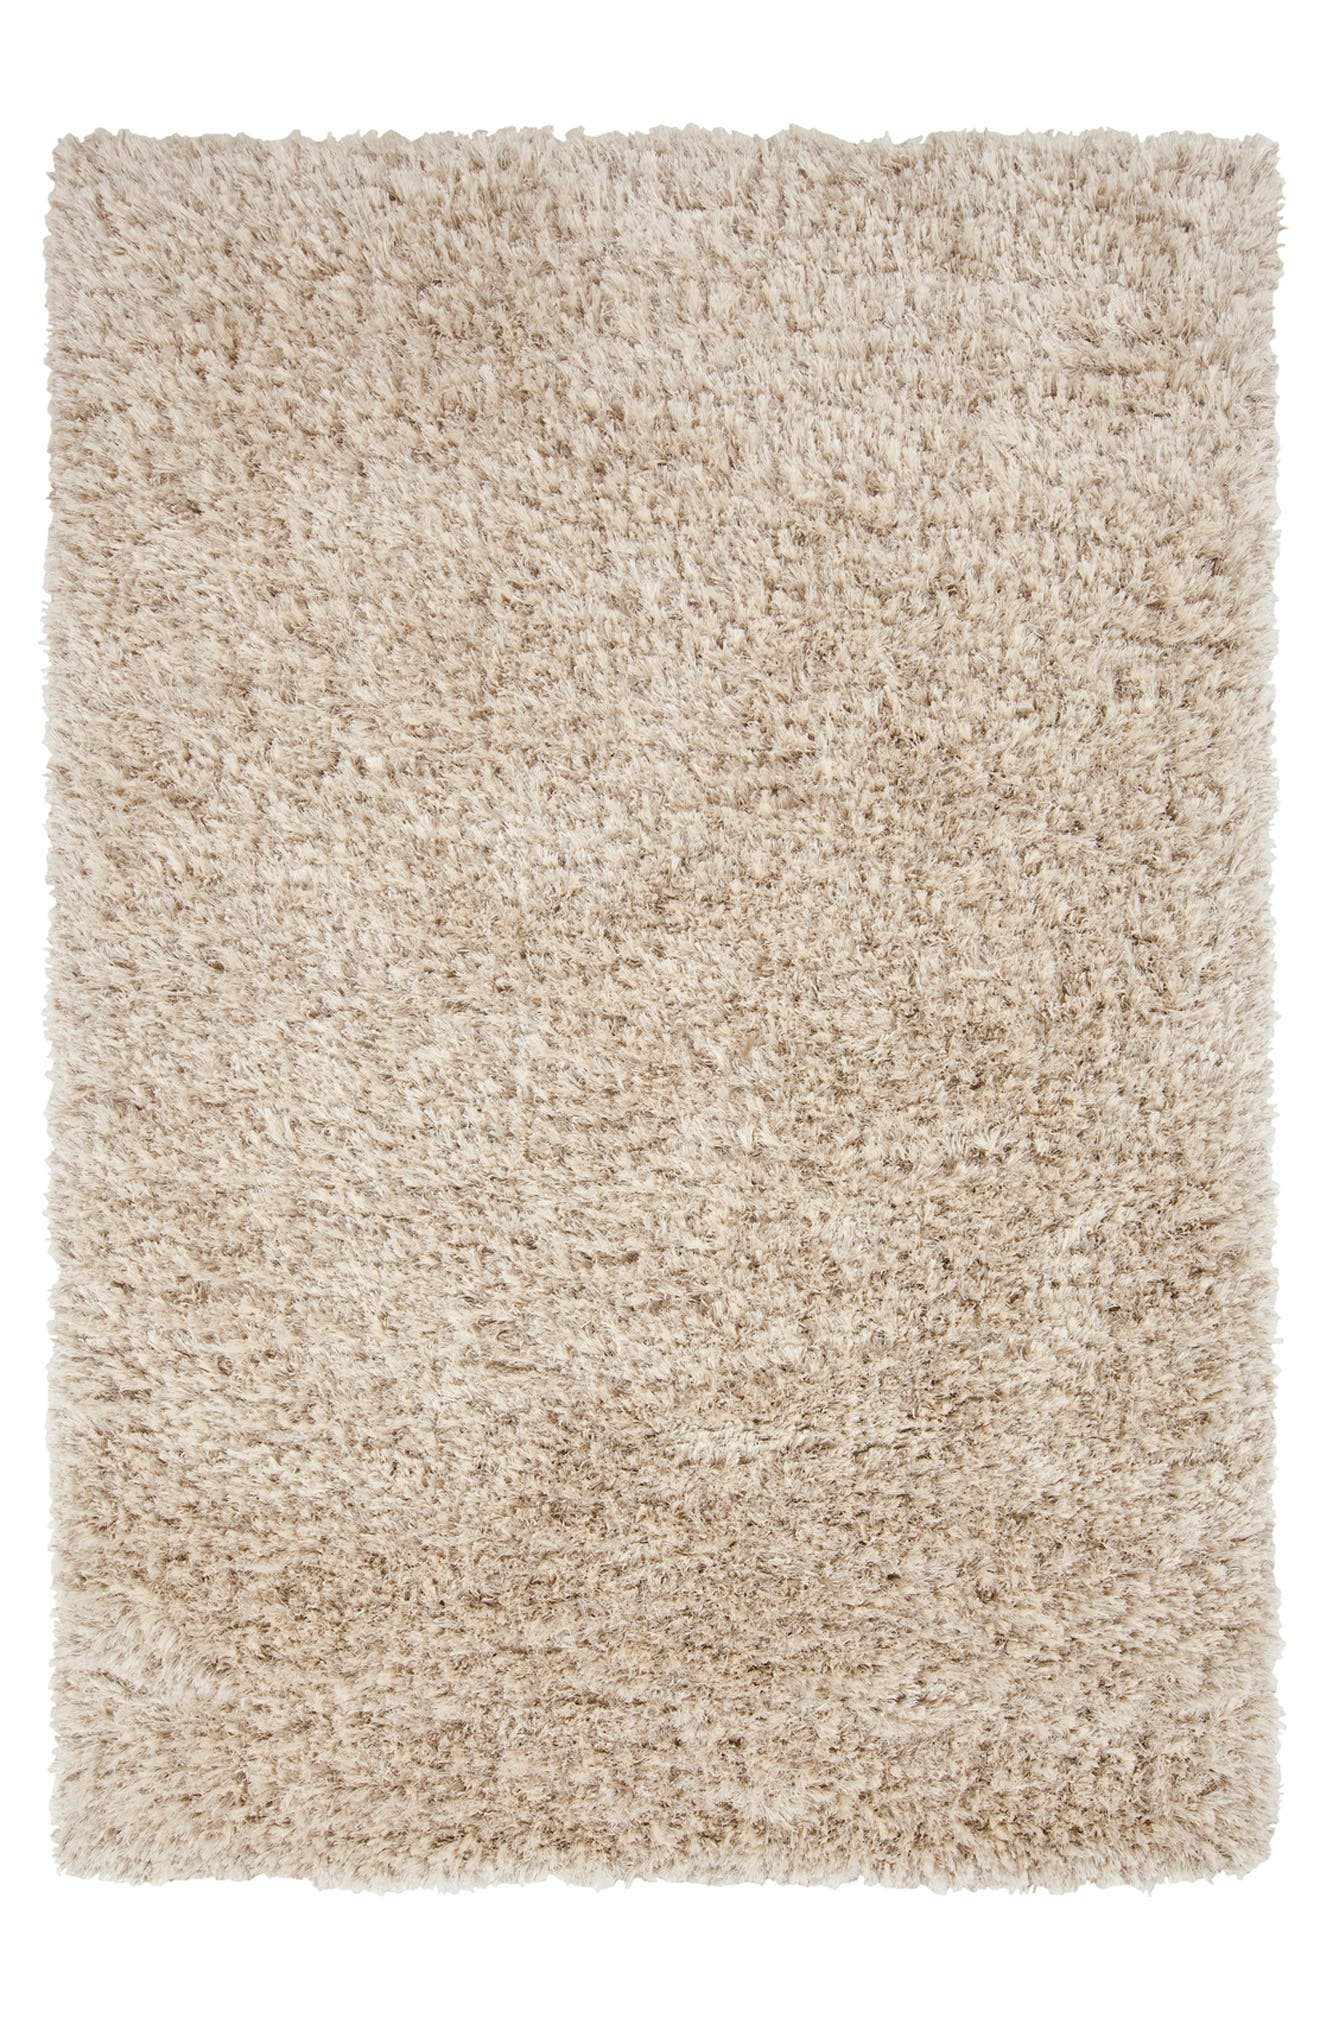 'Rhapsody' Rug,                             Alternate thumbnail 2, color,                             250